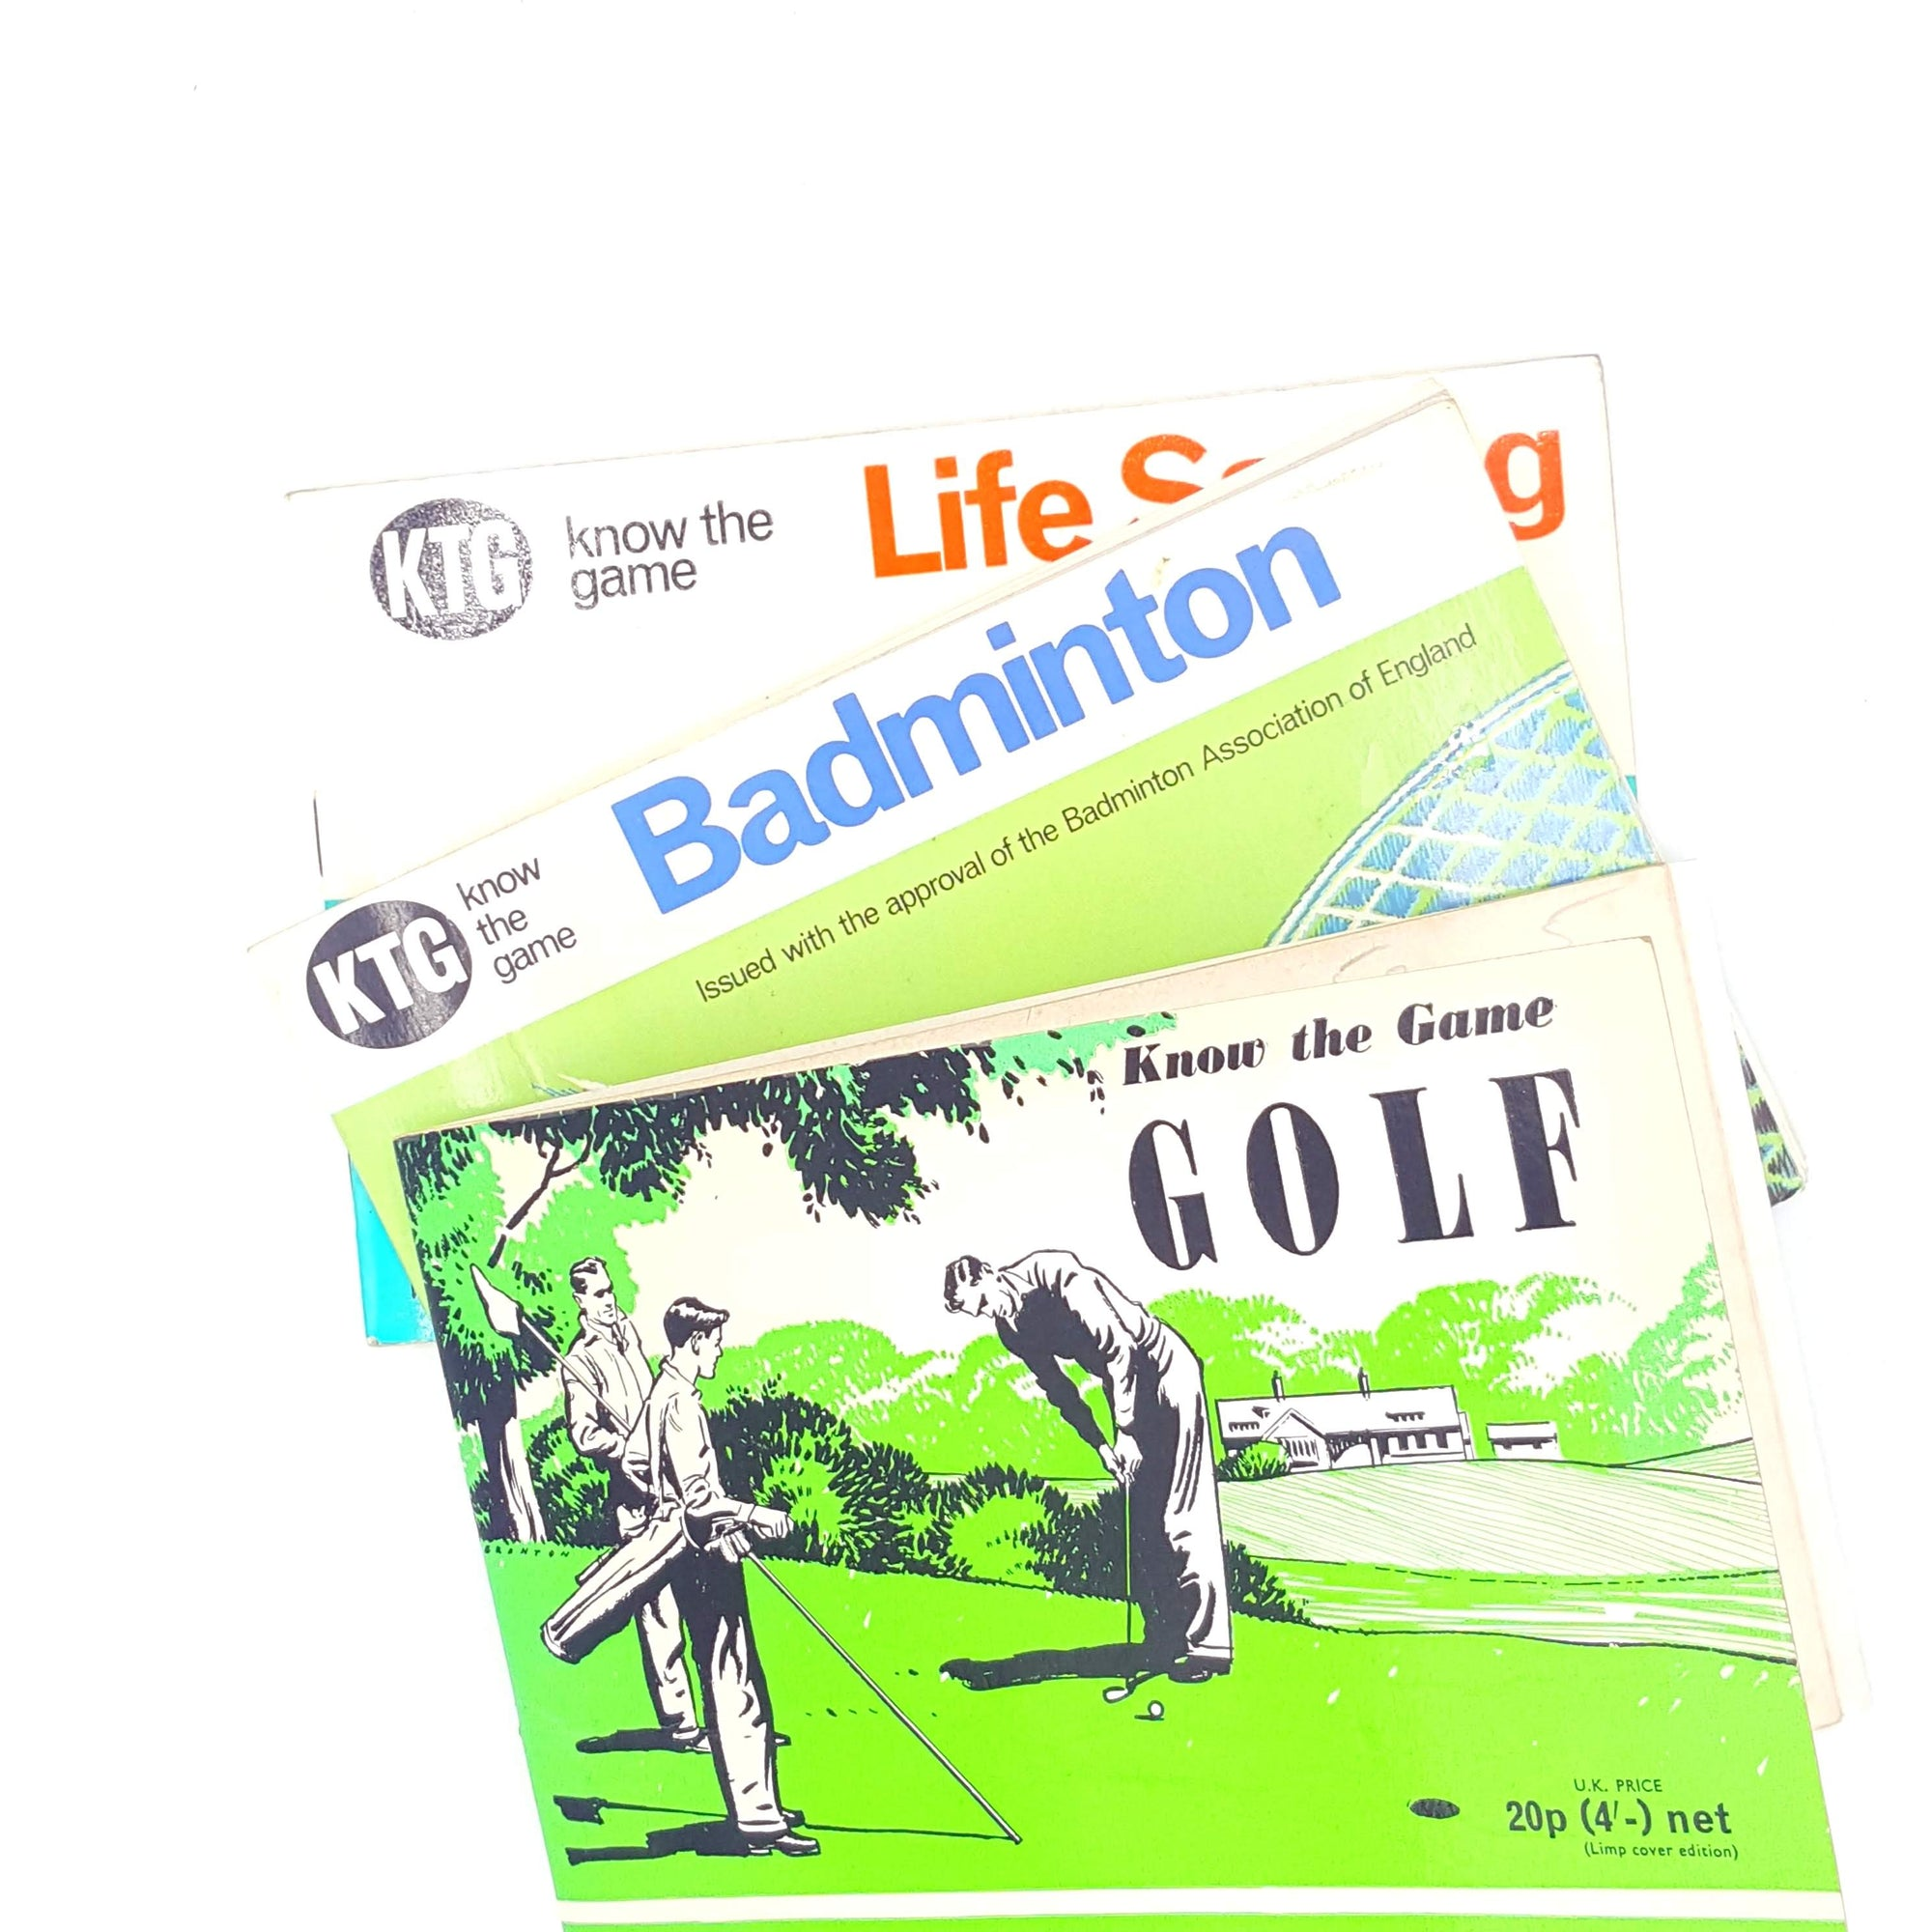 Know the Game, Badminton, Golf and Life Saving